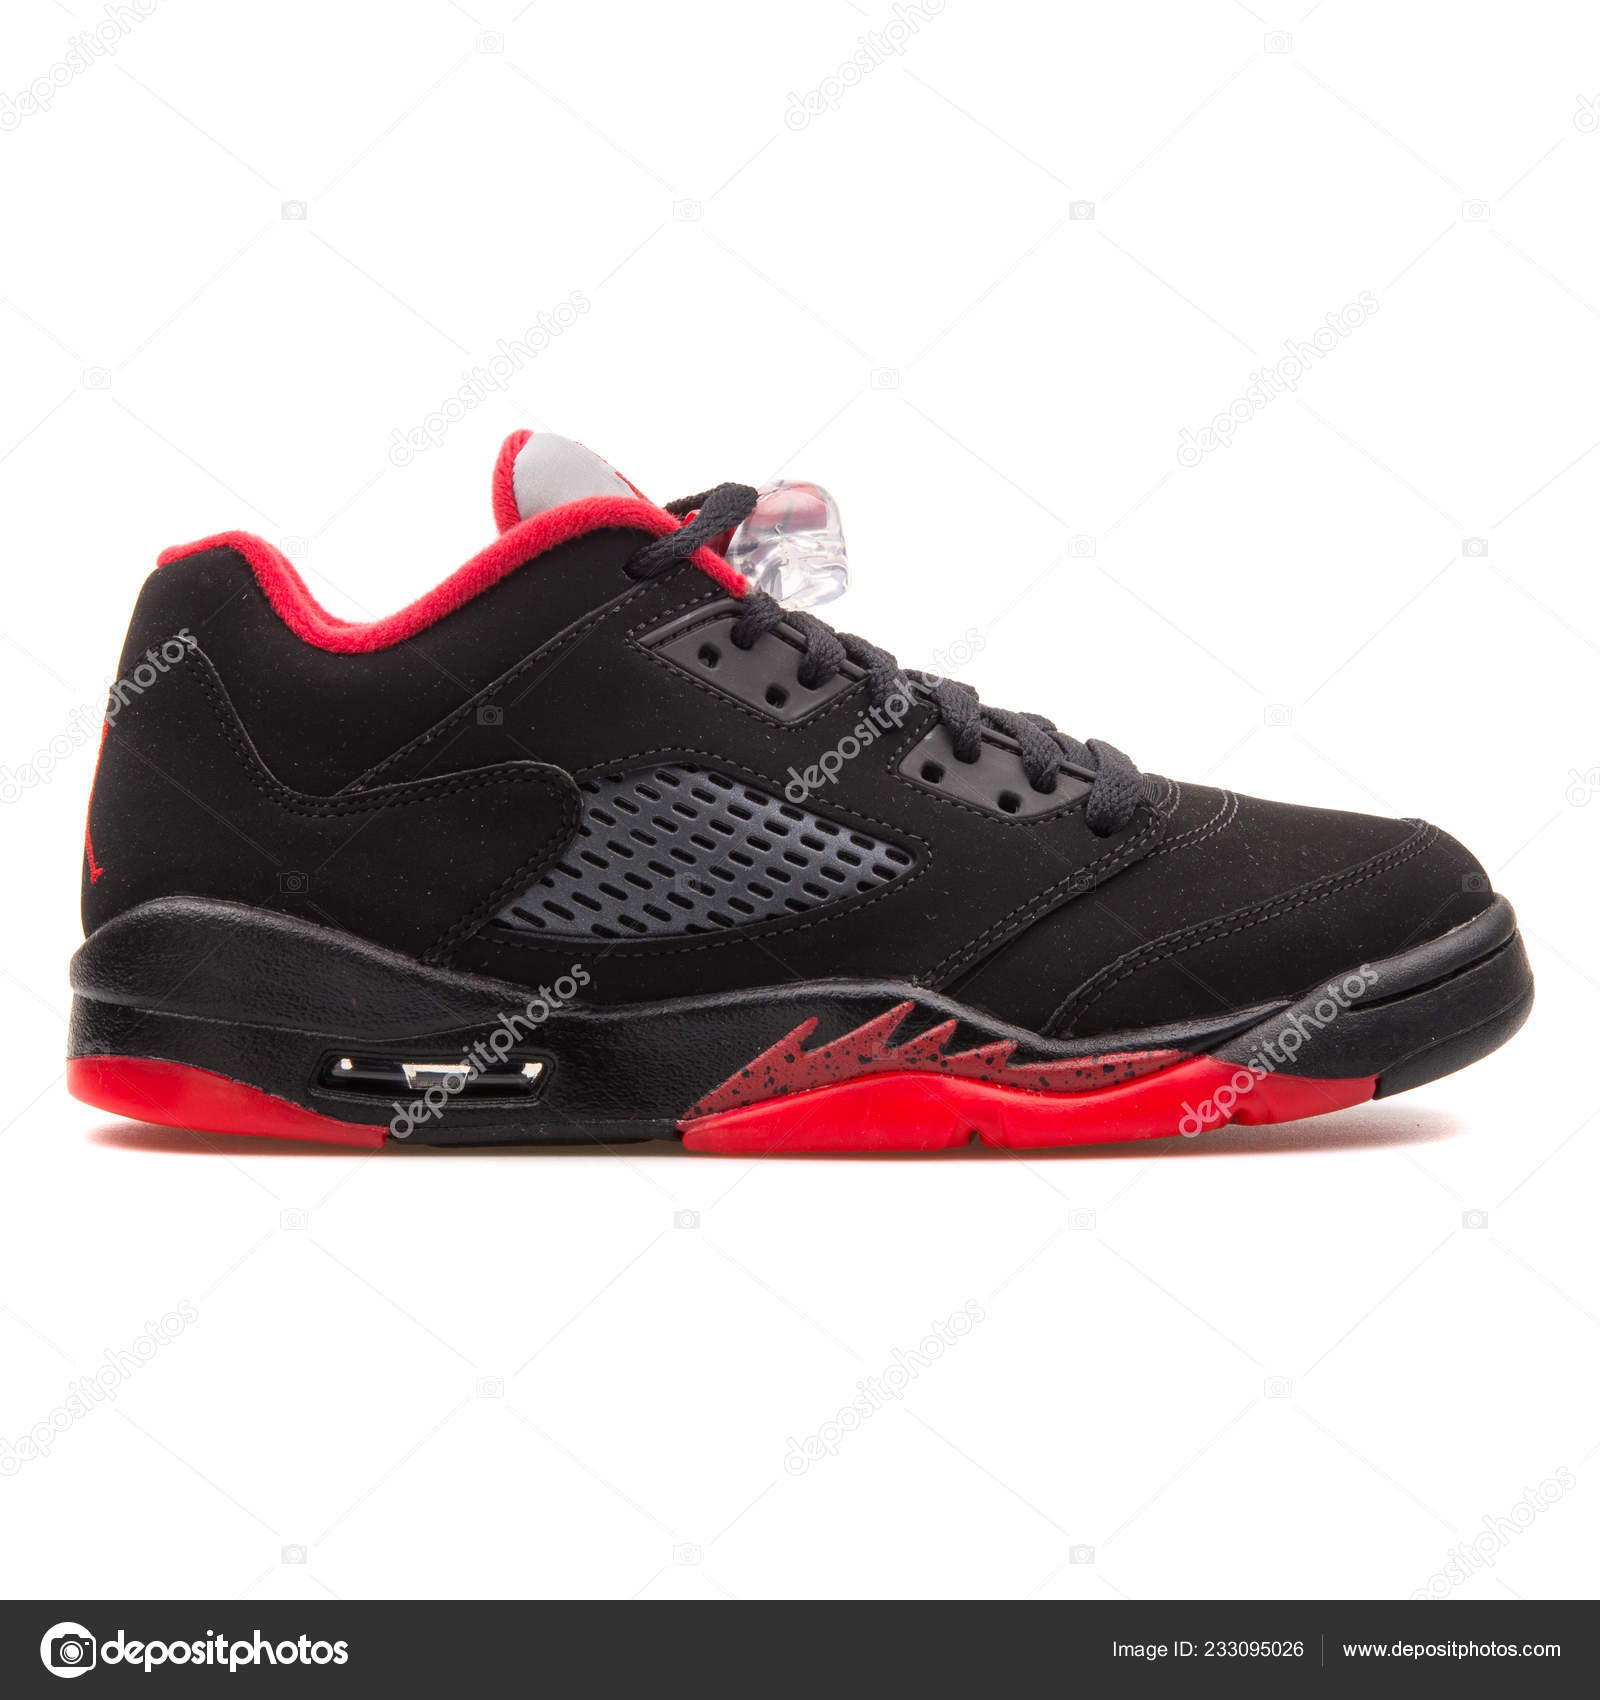 363708d7 VIENNA, AUSTRIA - JUNE 14, 2017: Nike Air Jordan 5 Retro Low black and red  sneaker isolated on white background — Photo by xMarshallfilms